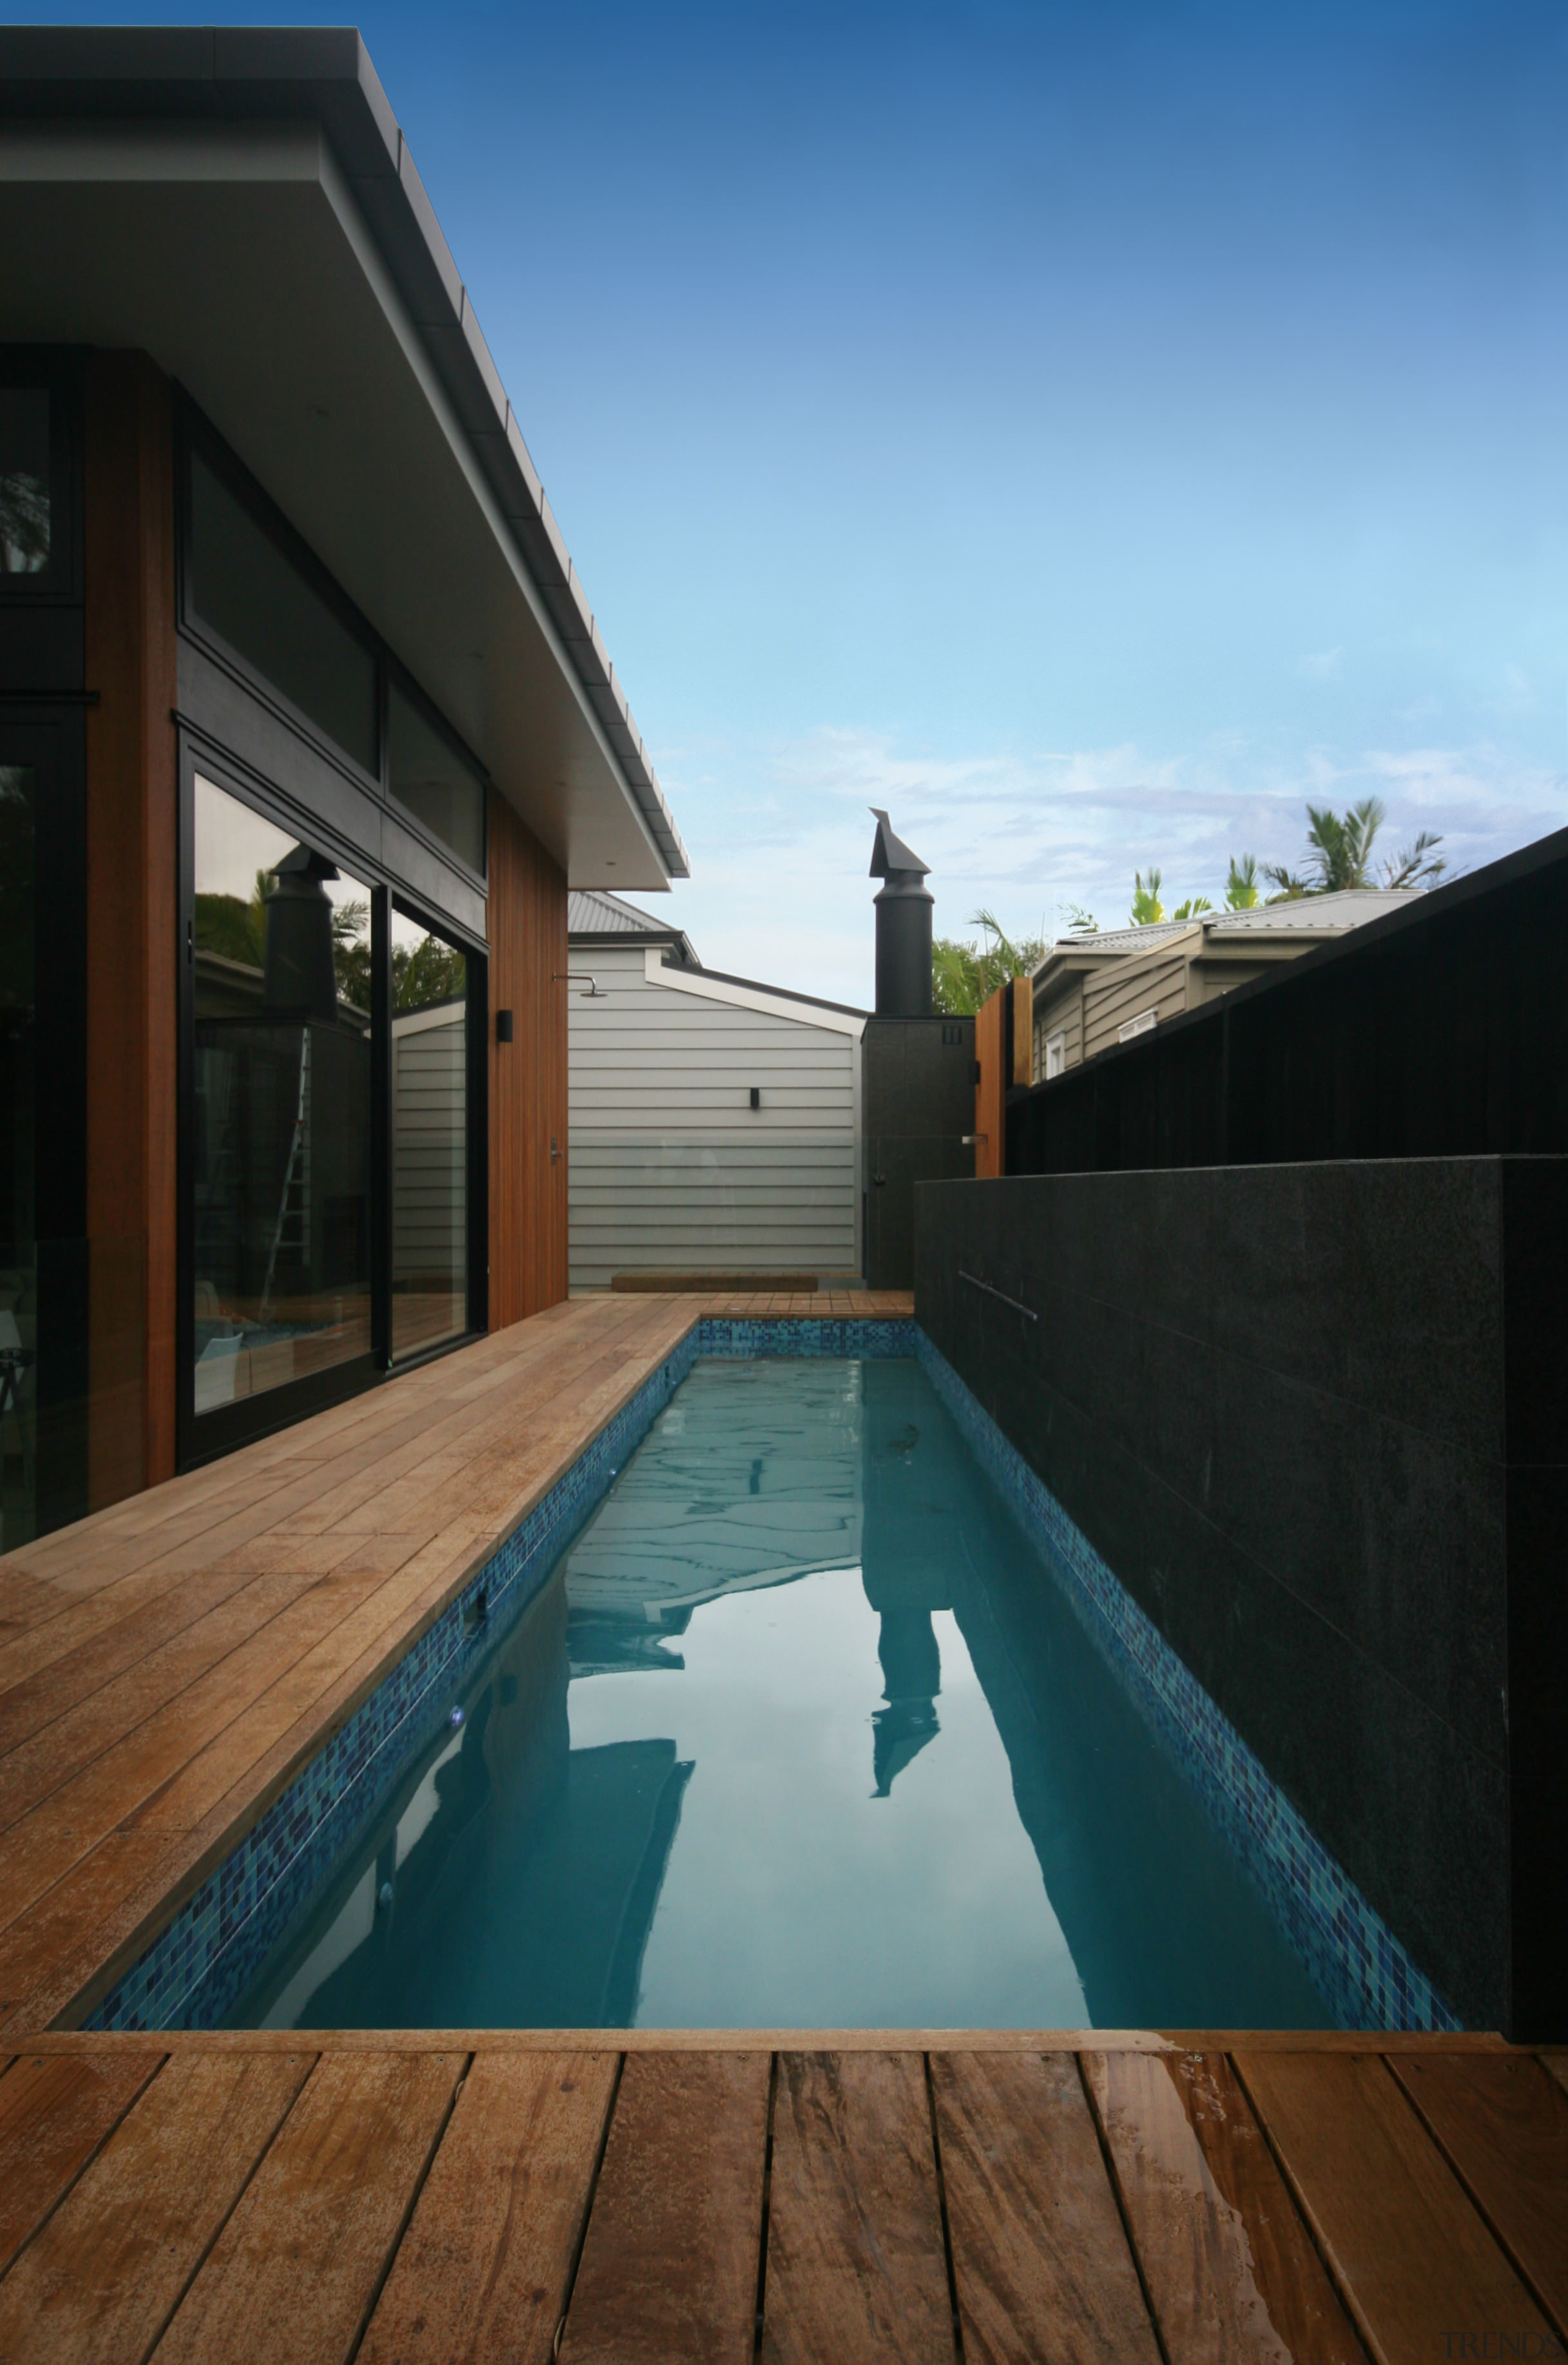 If you are time poor, Executive Pools offers architecture, daylighting, estate, home, house, property, real estate, reflection, sky, swimming pool, water, wood, black